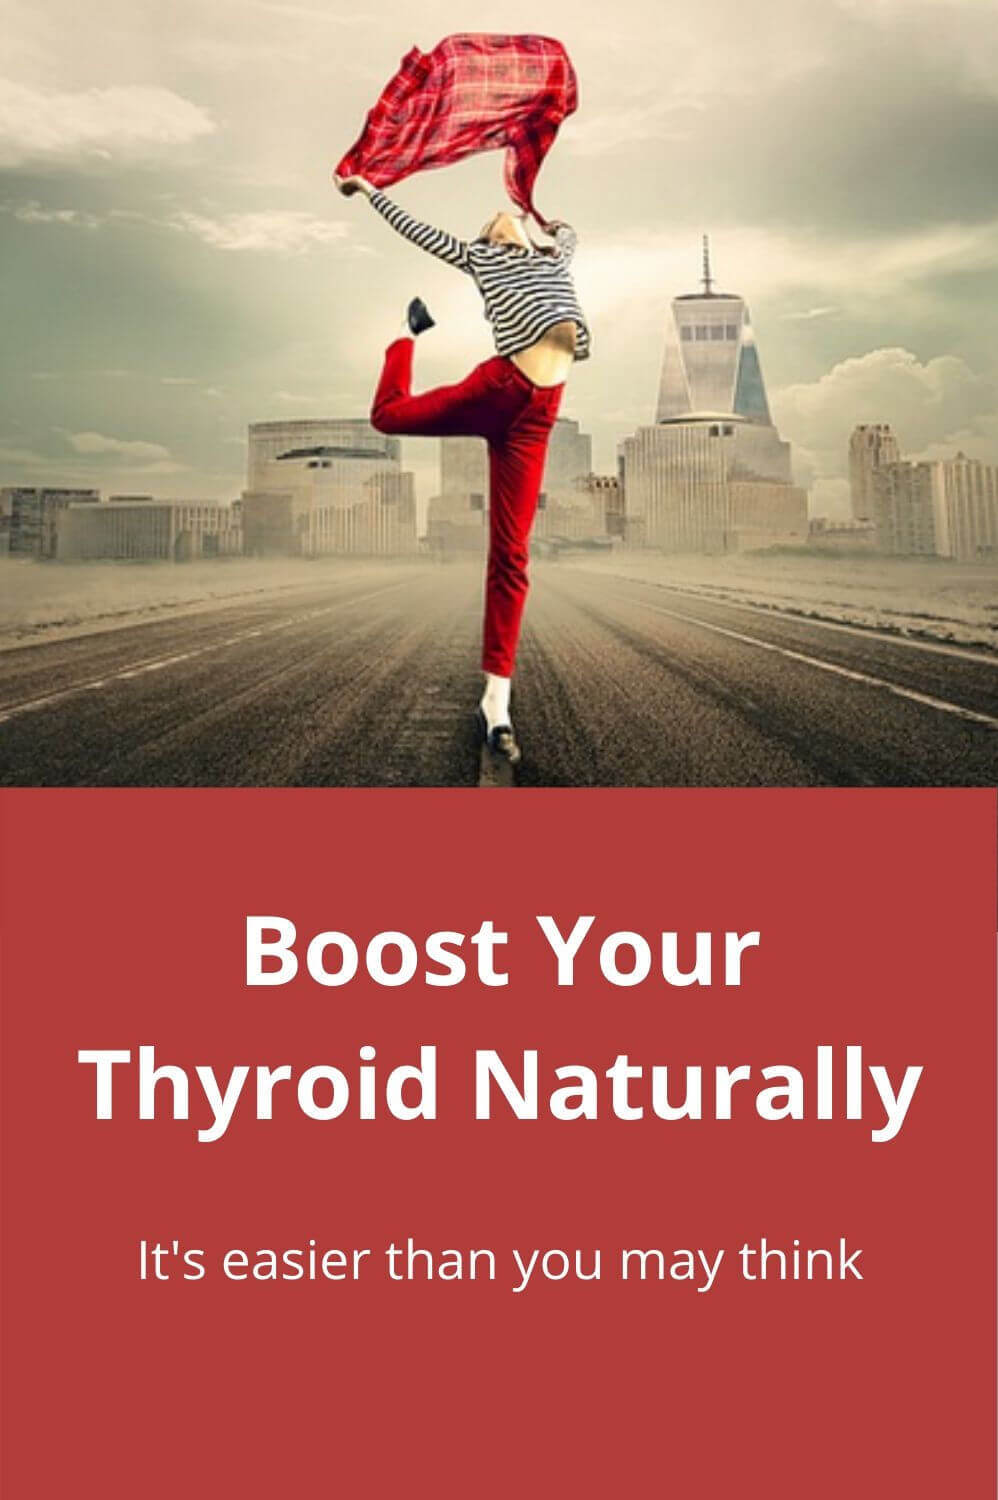 Boost Your Thyroid Naturally - it's easier than you may think